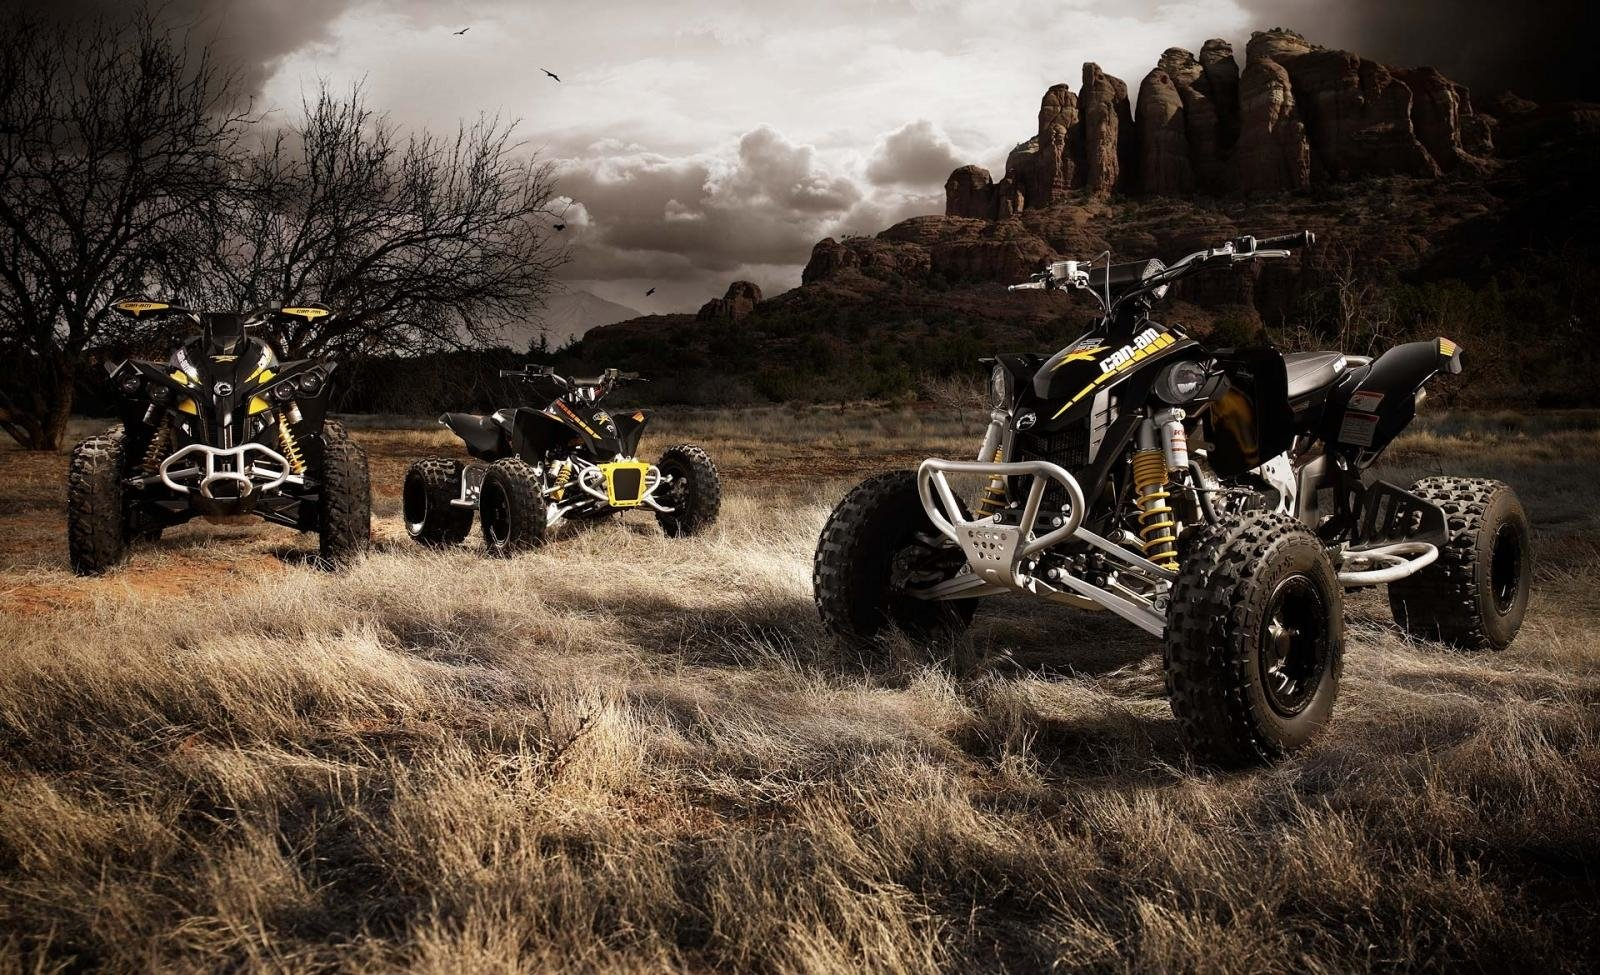 1600x975 - Can-Am Wallpapers 2